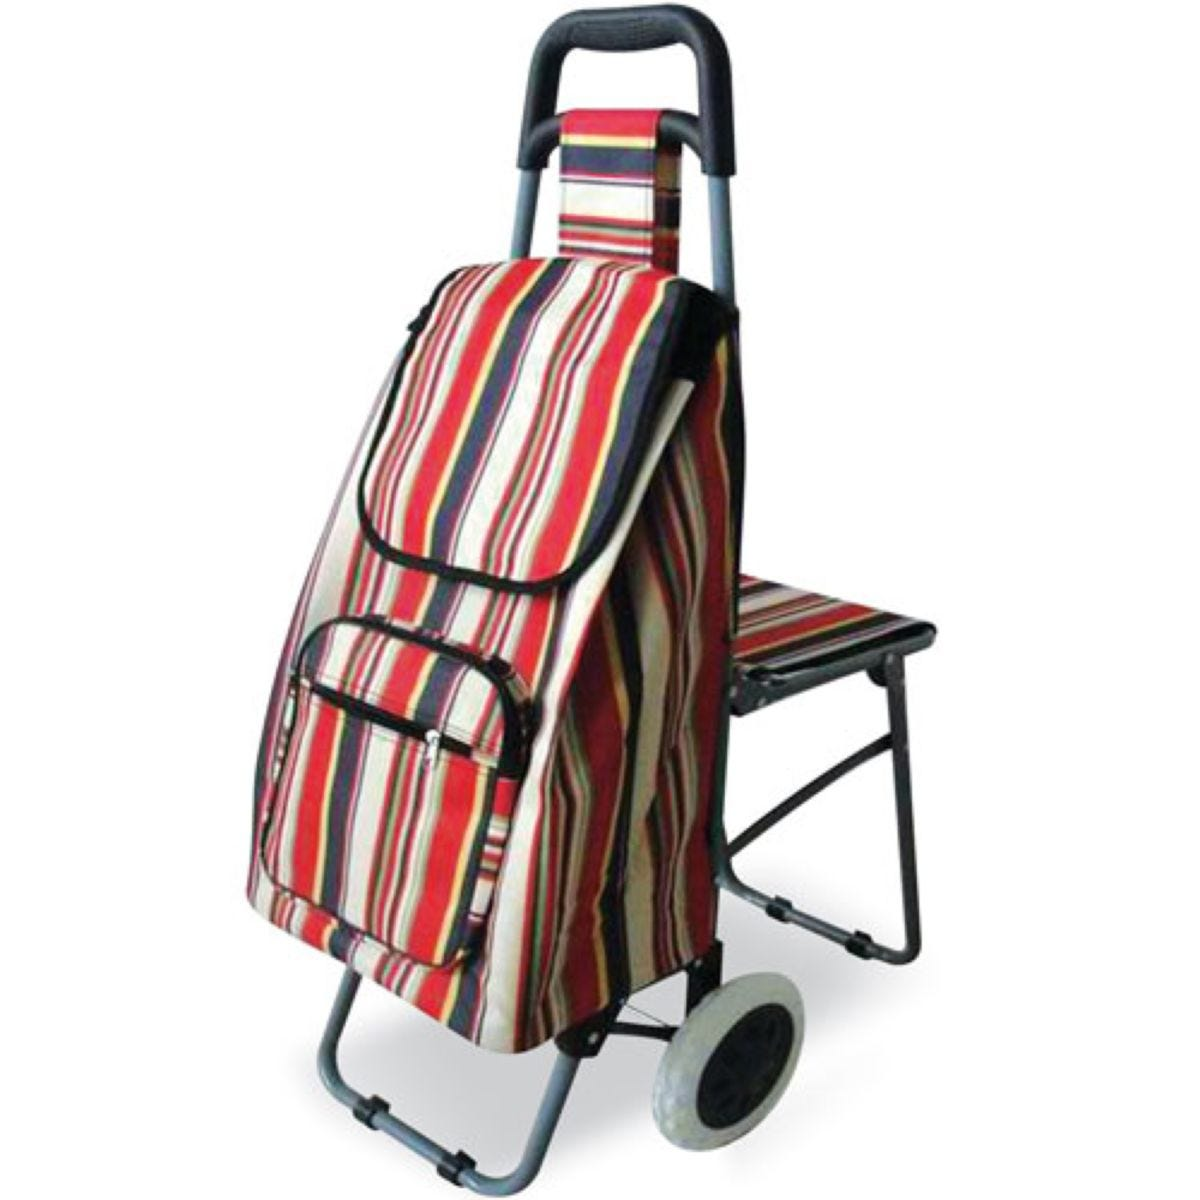 Lifemax Leisure Trolley With Seat